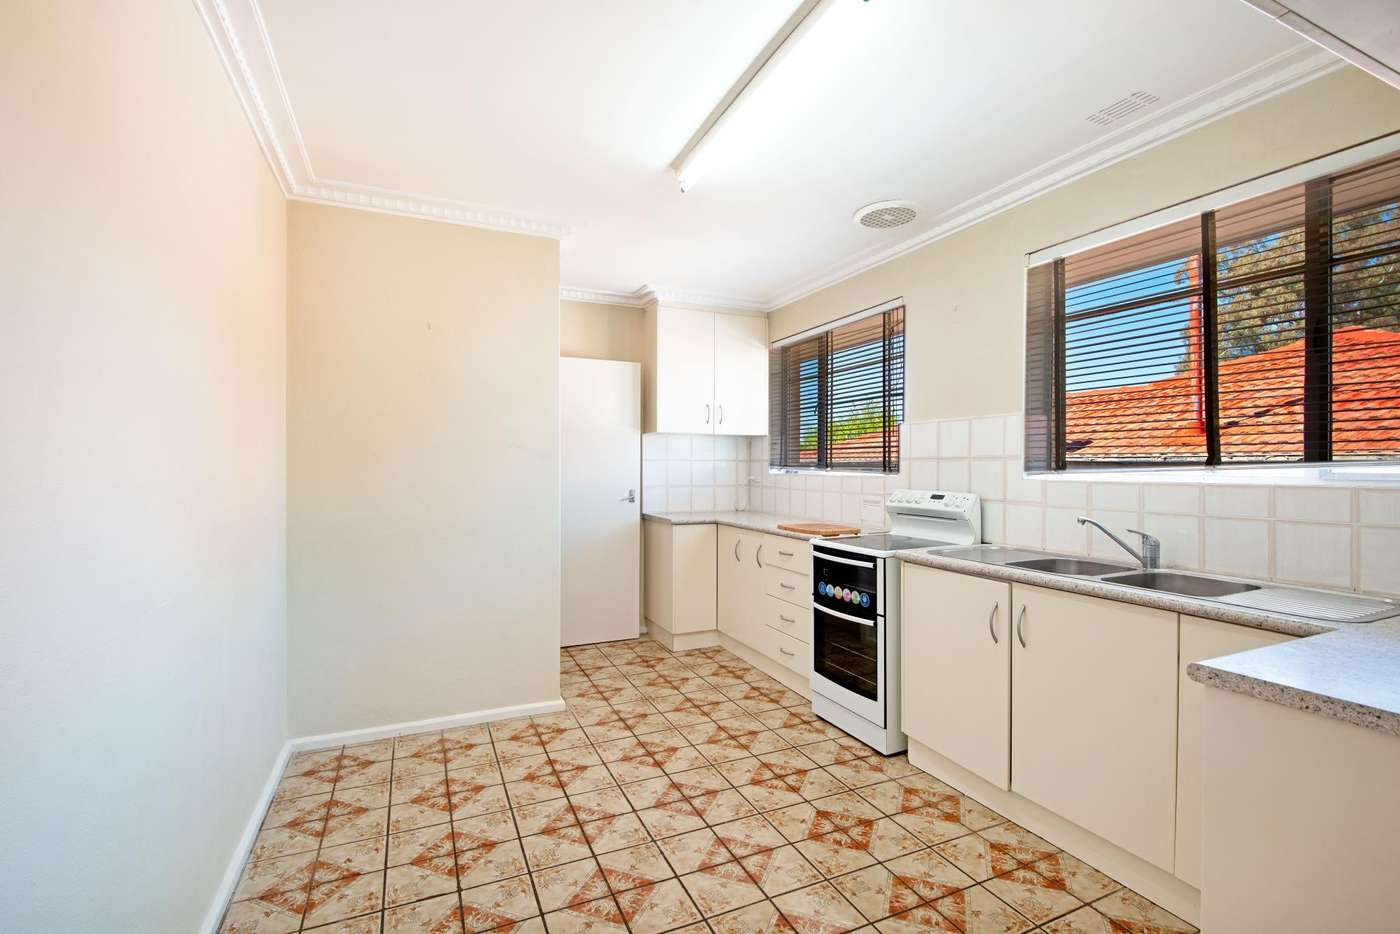 Seventh view of Homely house listing, 31 Theodore Street, Curtin ACT 2605